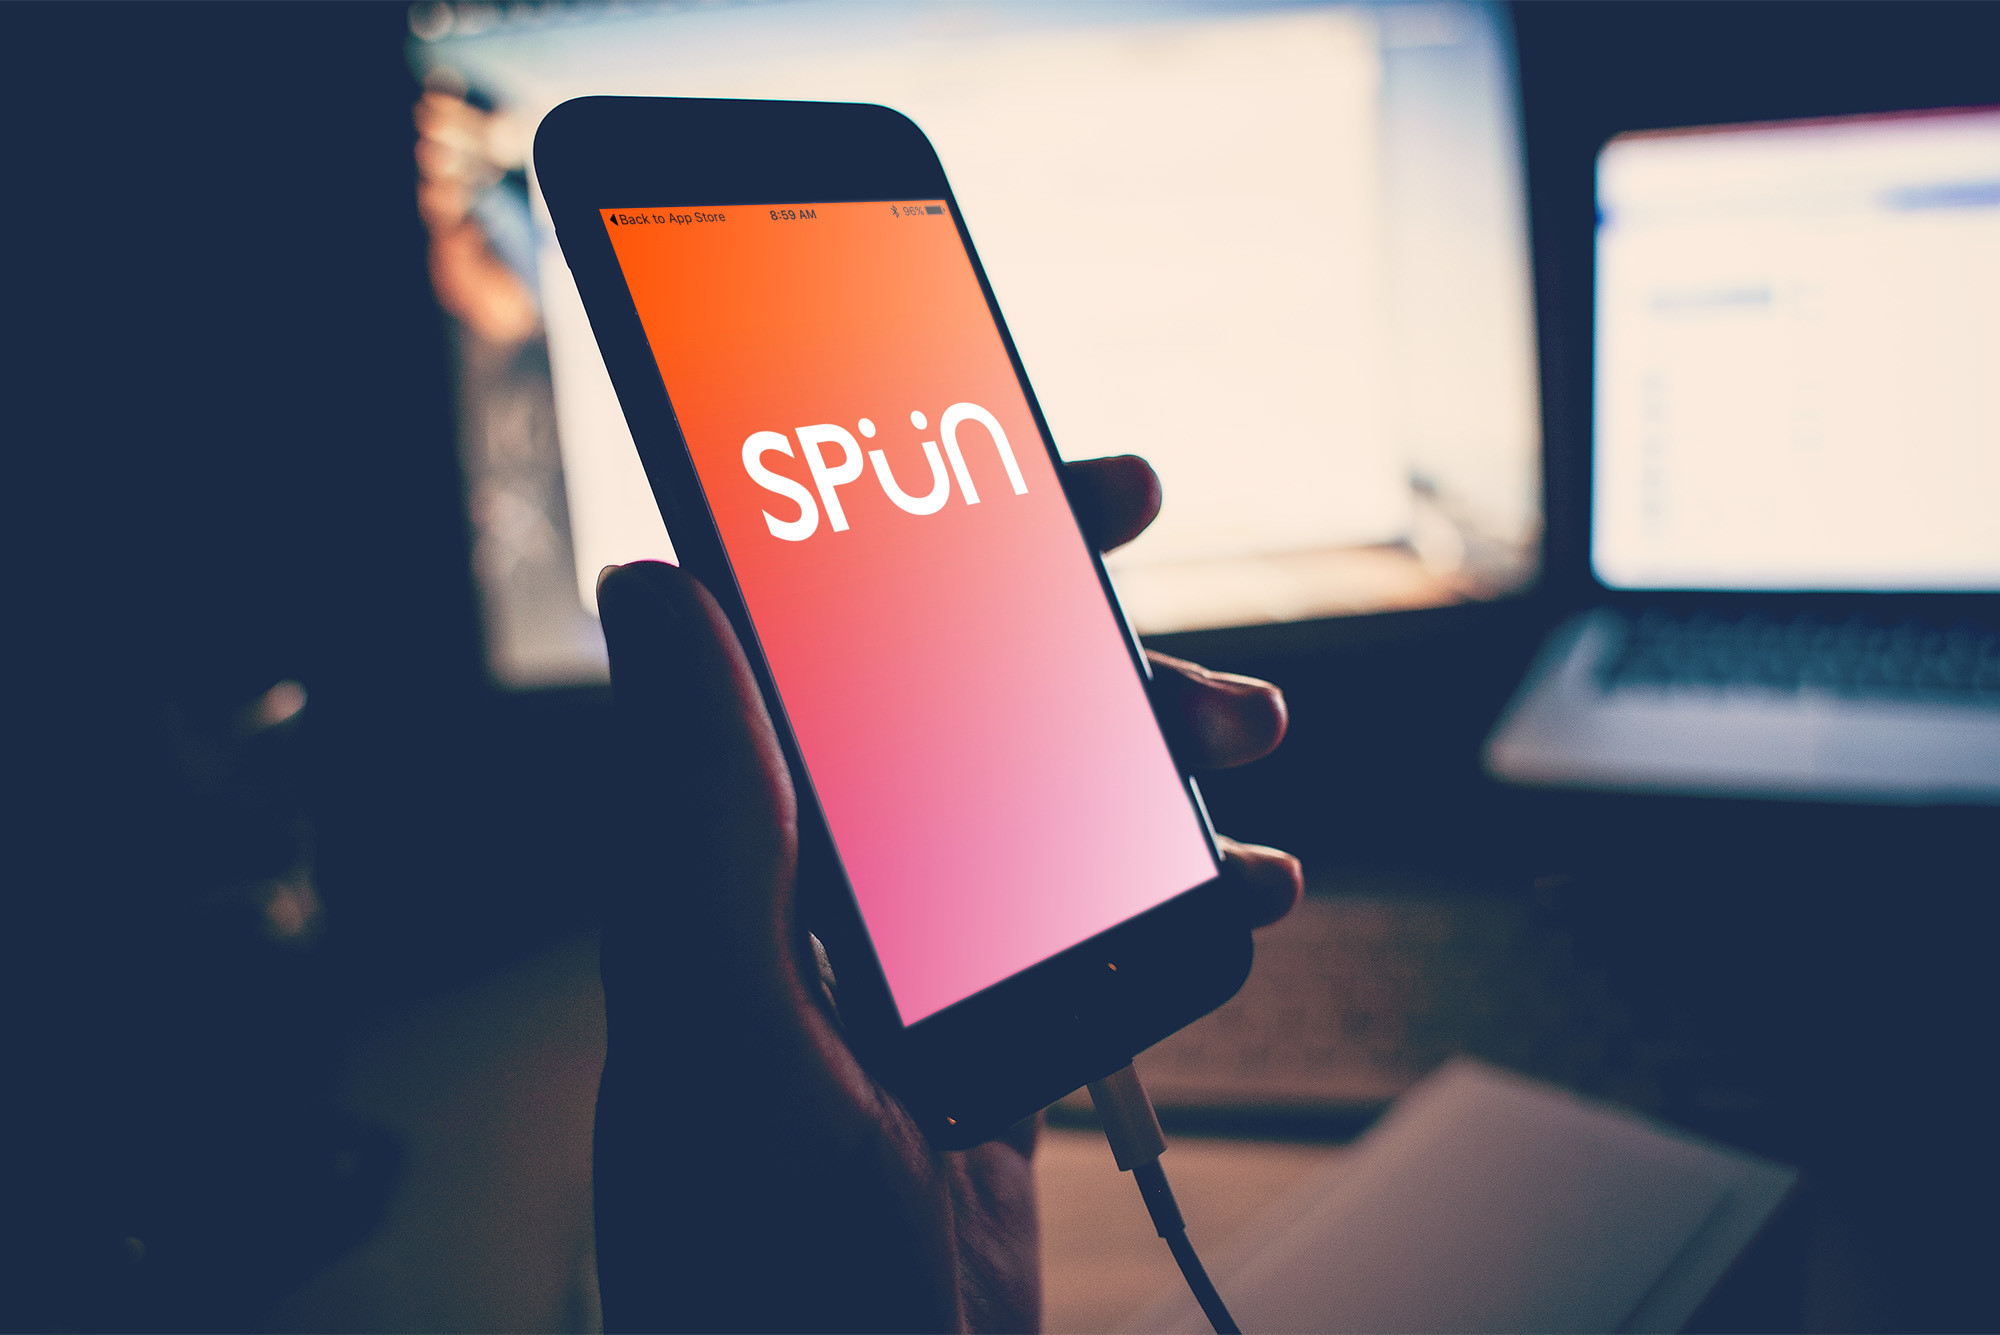 Go wild and create crazy video mashups with Spun